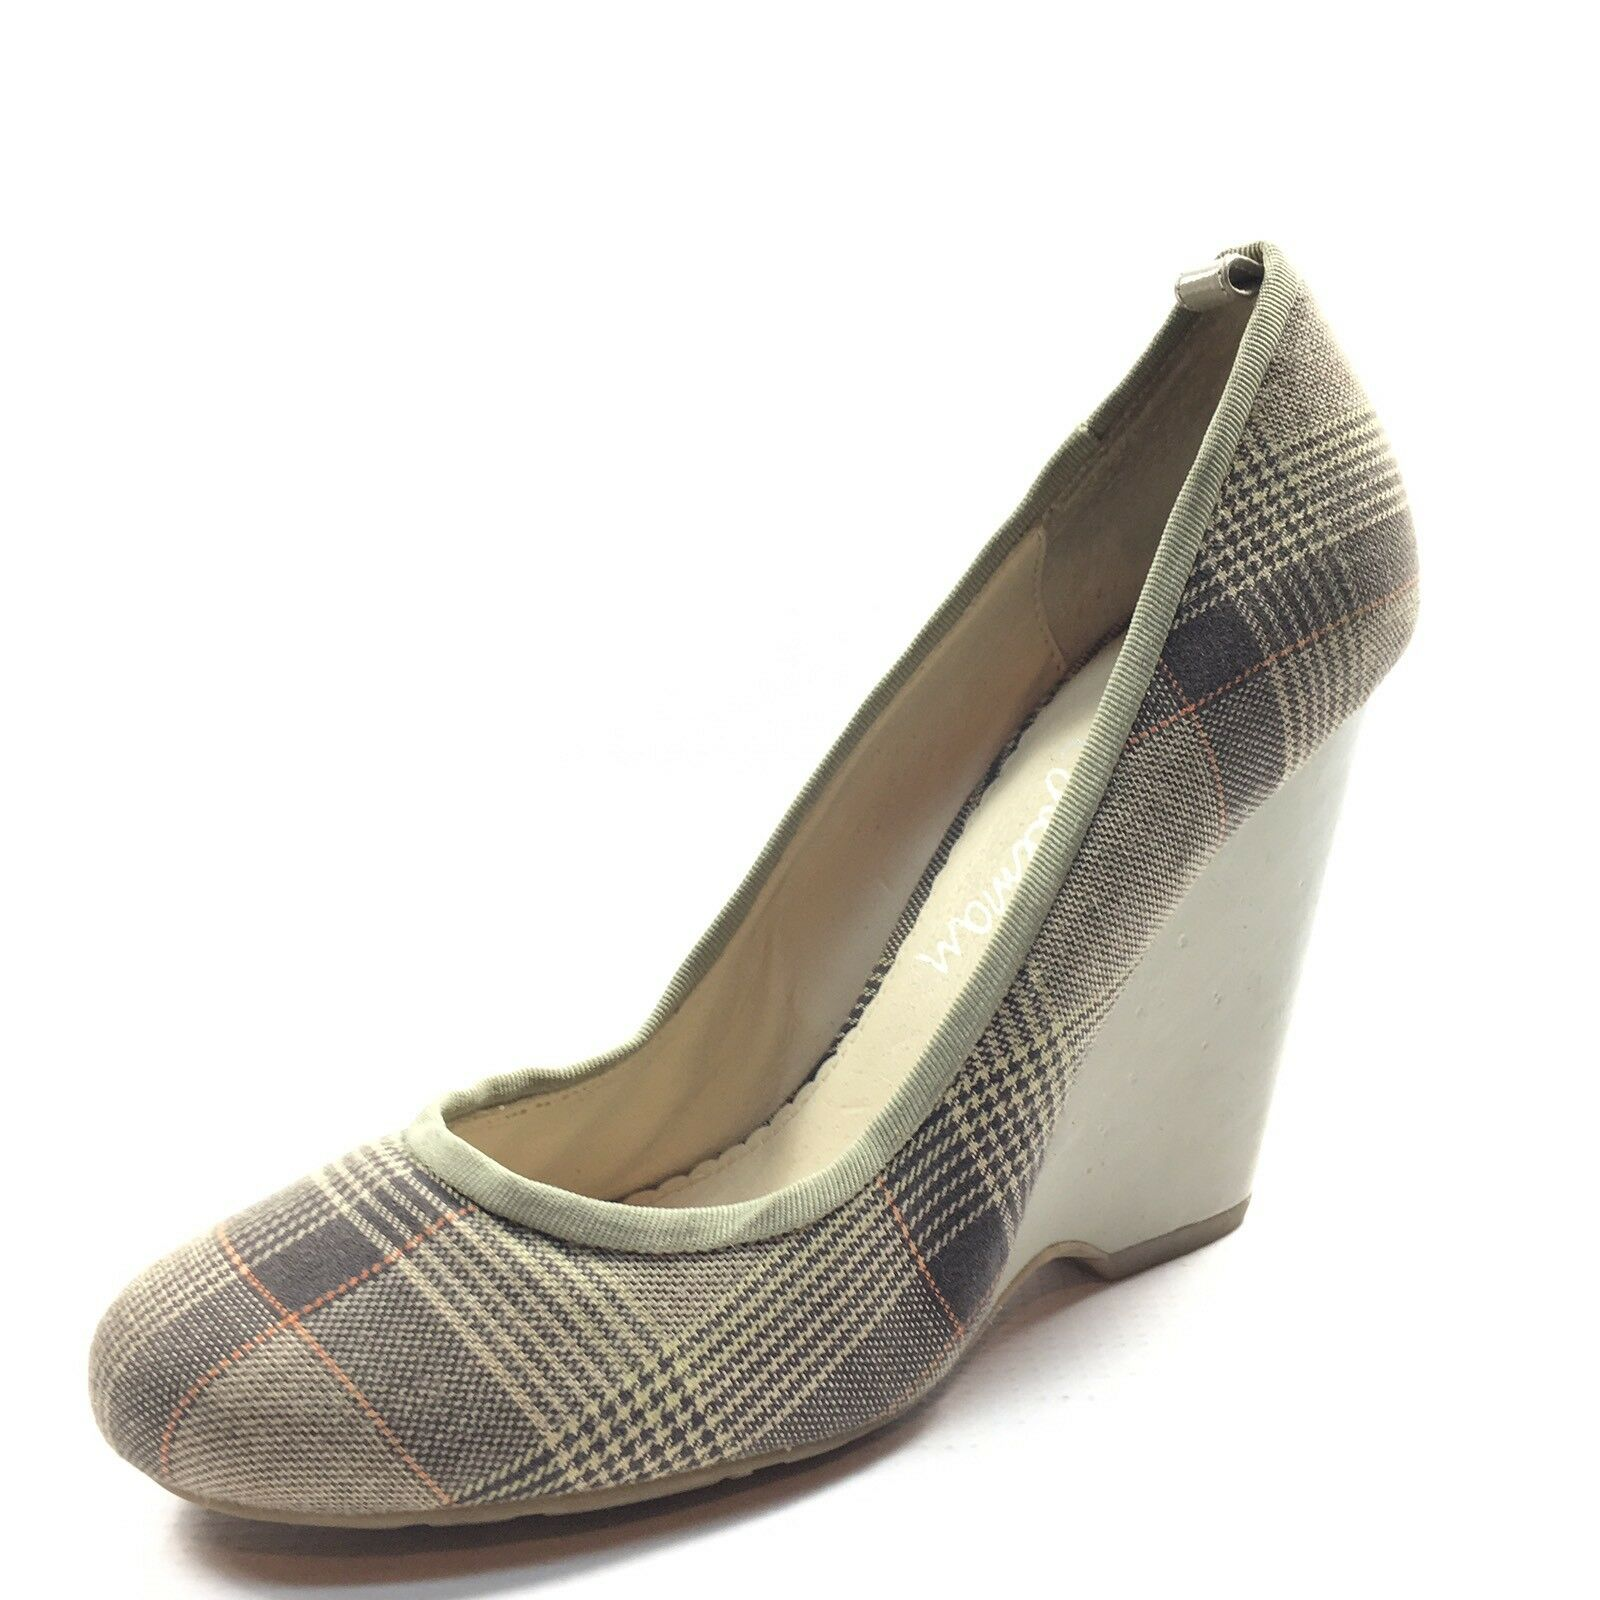 Sam Edelman Taupe Plaid Fabric Wedge Pumps Women's Size 6.5 M